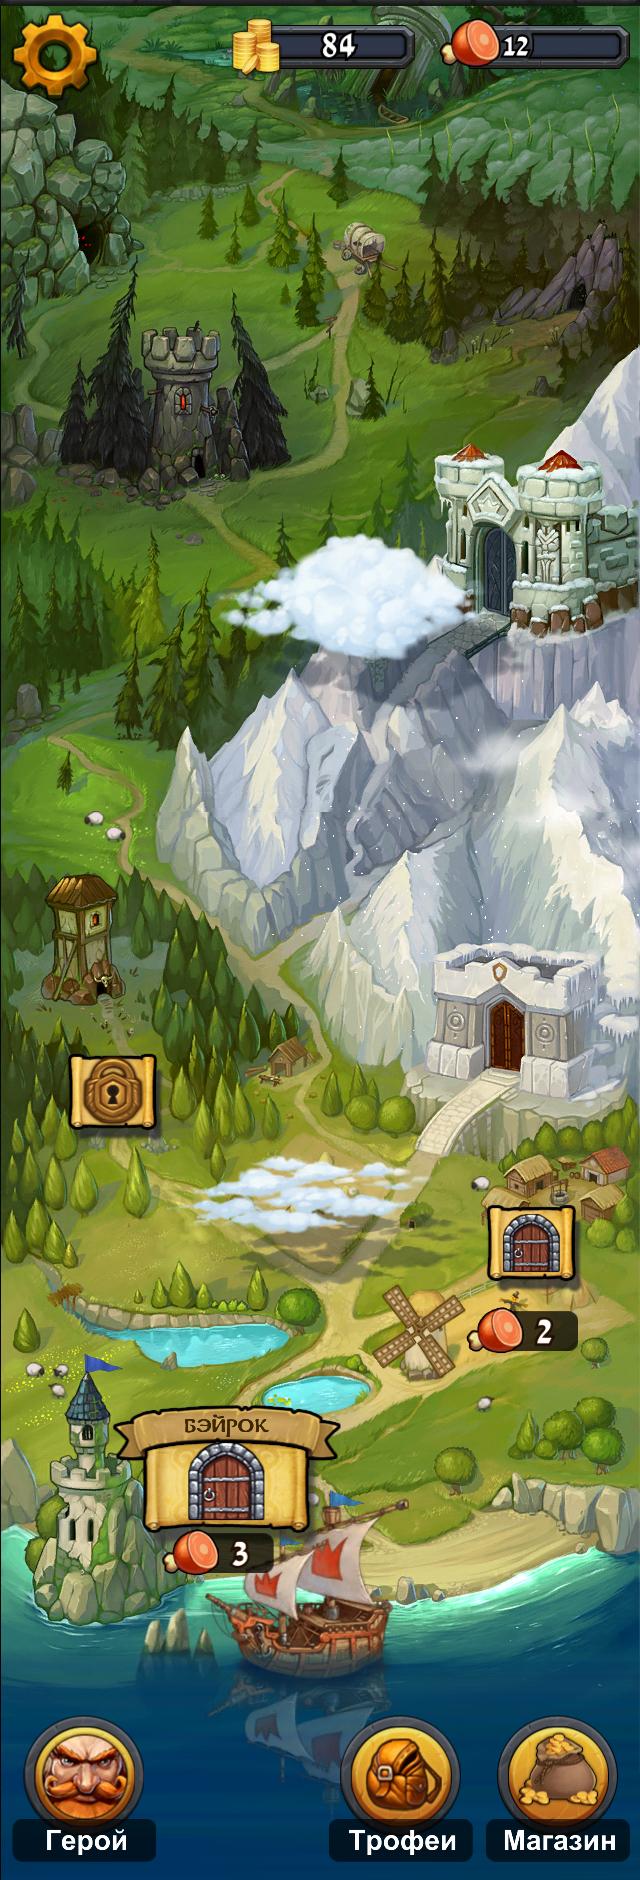 Game map inspiration game environment pinterest app game map gumiabroncs Gallery